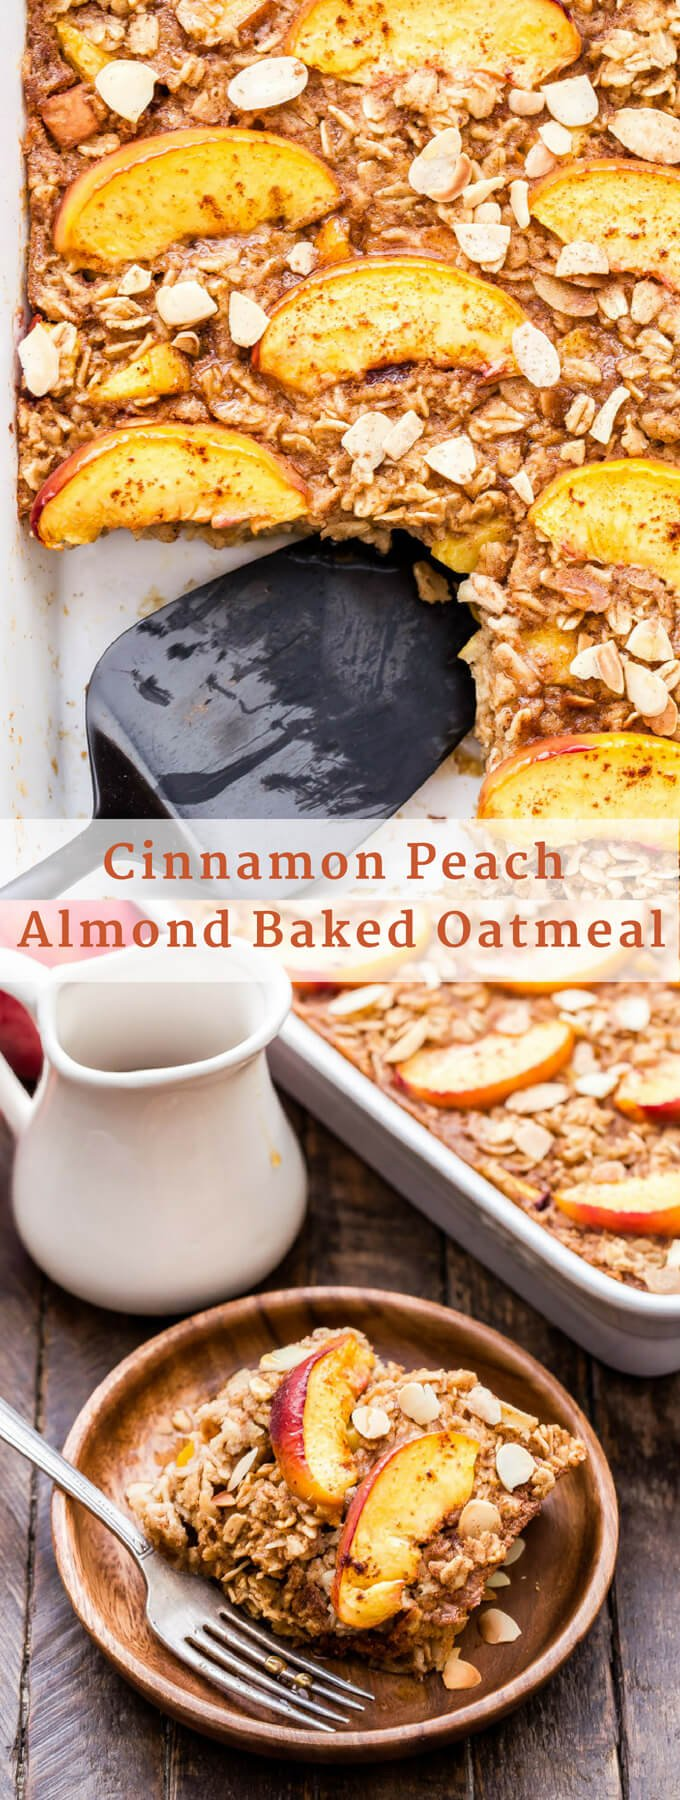 Cinnamon Peach Almond Baked Oatmeal is perfect for the weekends and great reheated for a quick and easy breakfast during the week! Loaded with sweet peaches, plenty of cinnamon and toasted almonds for crunch. A creamy, healthy and delicious alternative to traditional oatmeal! #oatmeal #bakedoatmeal #peach #breakfast #glutenfree #healthybreakfast